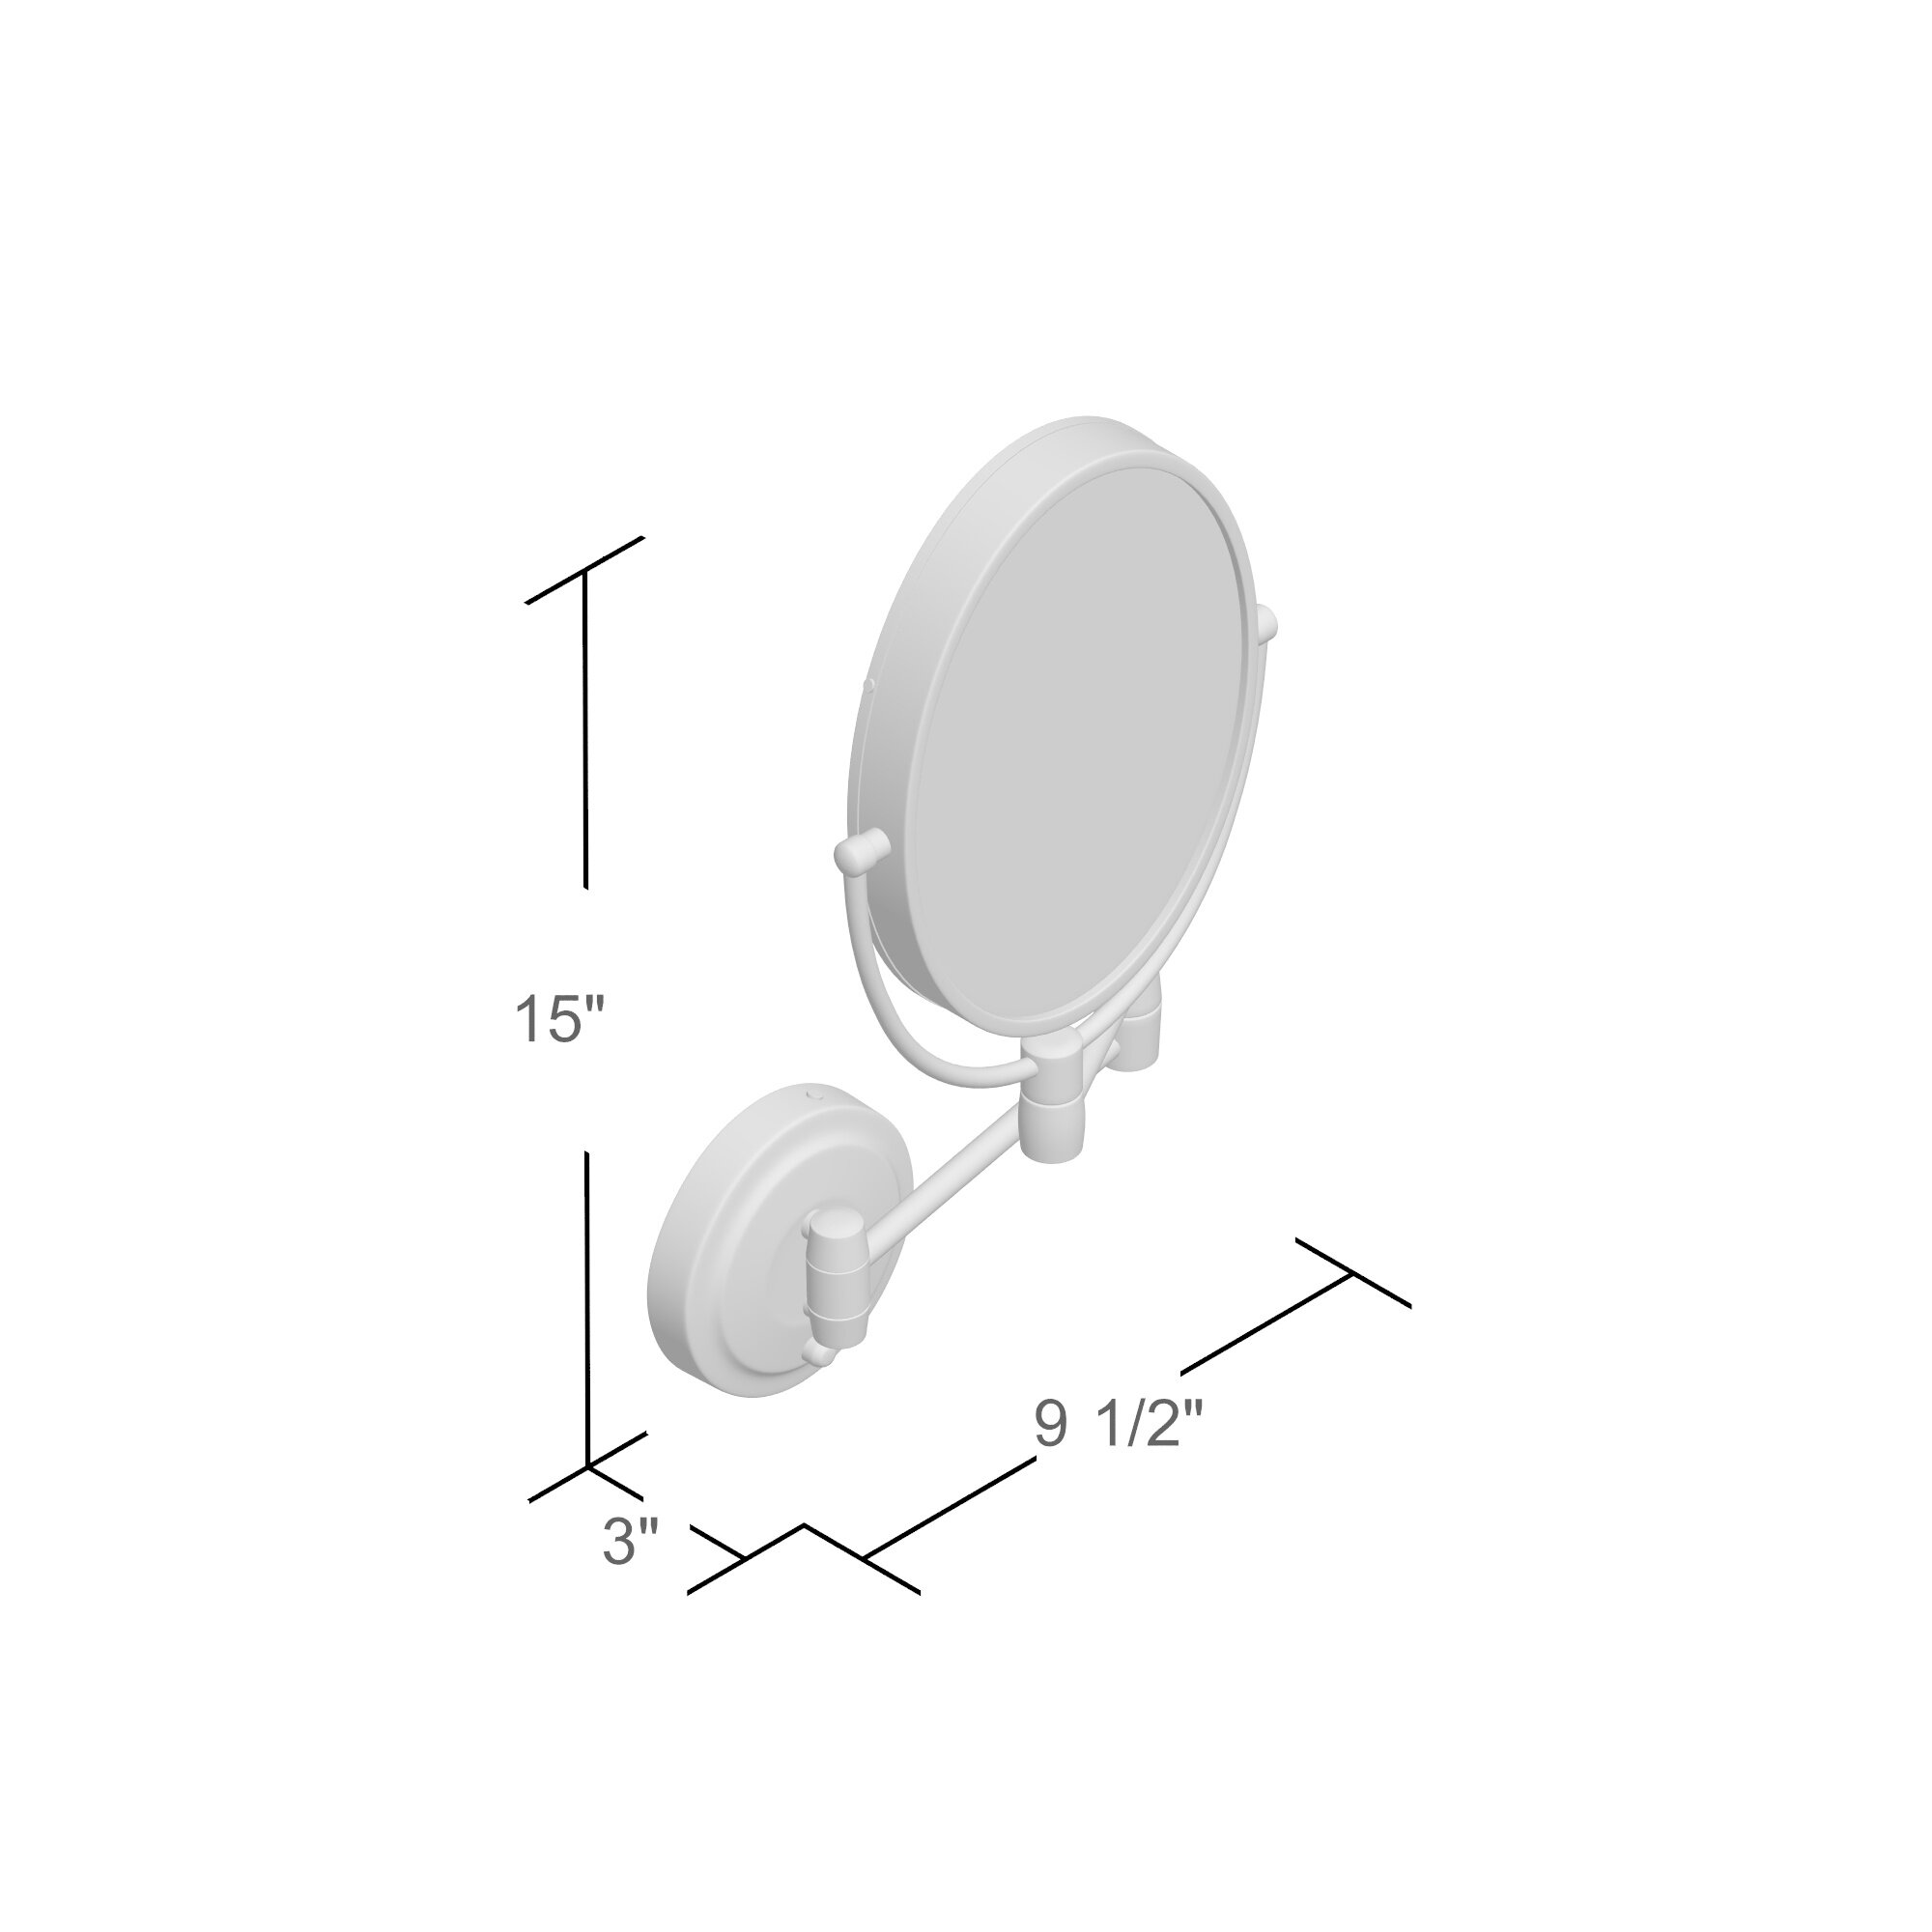 varick gallery howell cordless dual led lighted oval wall mount varick gallery reg howell cordless dual led lighted oval wall mount mirror 1x and 10x